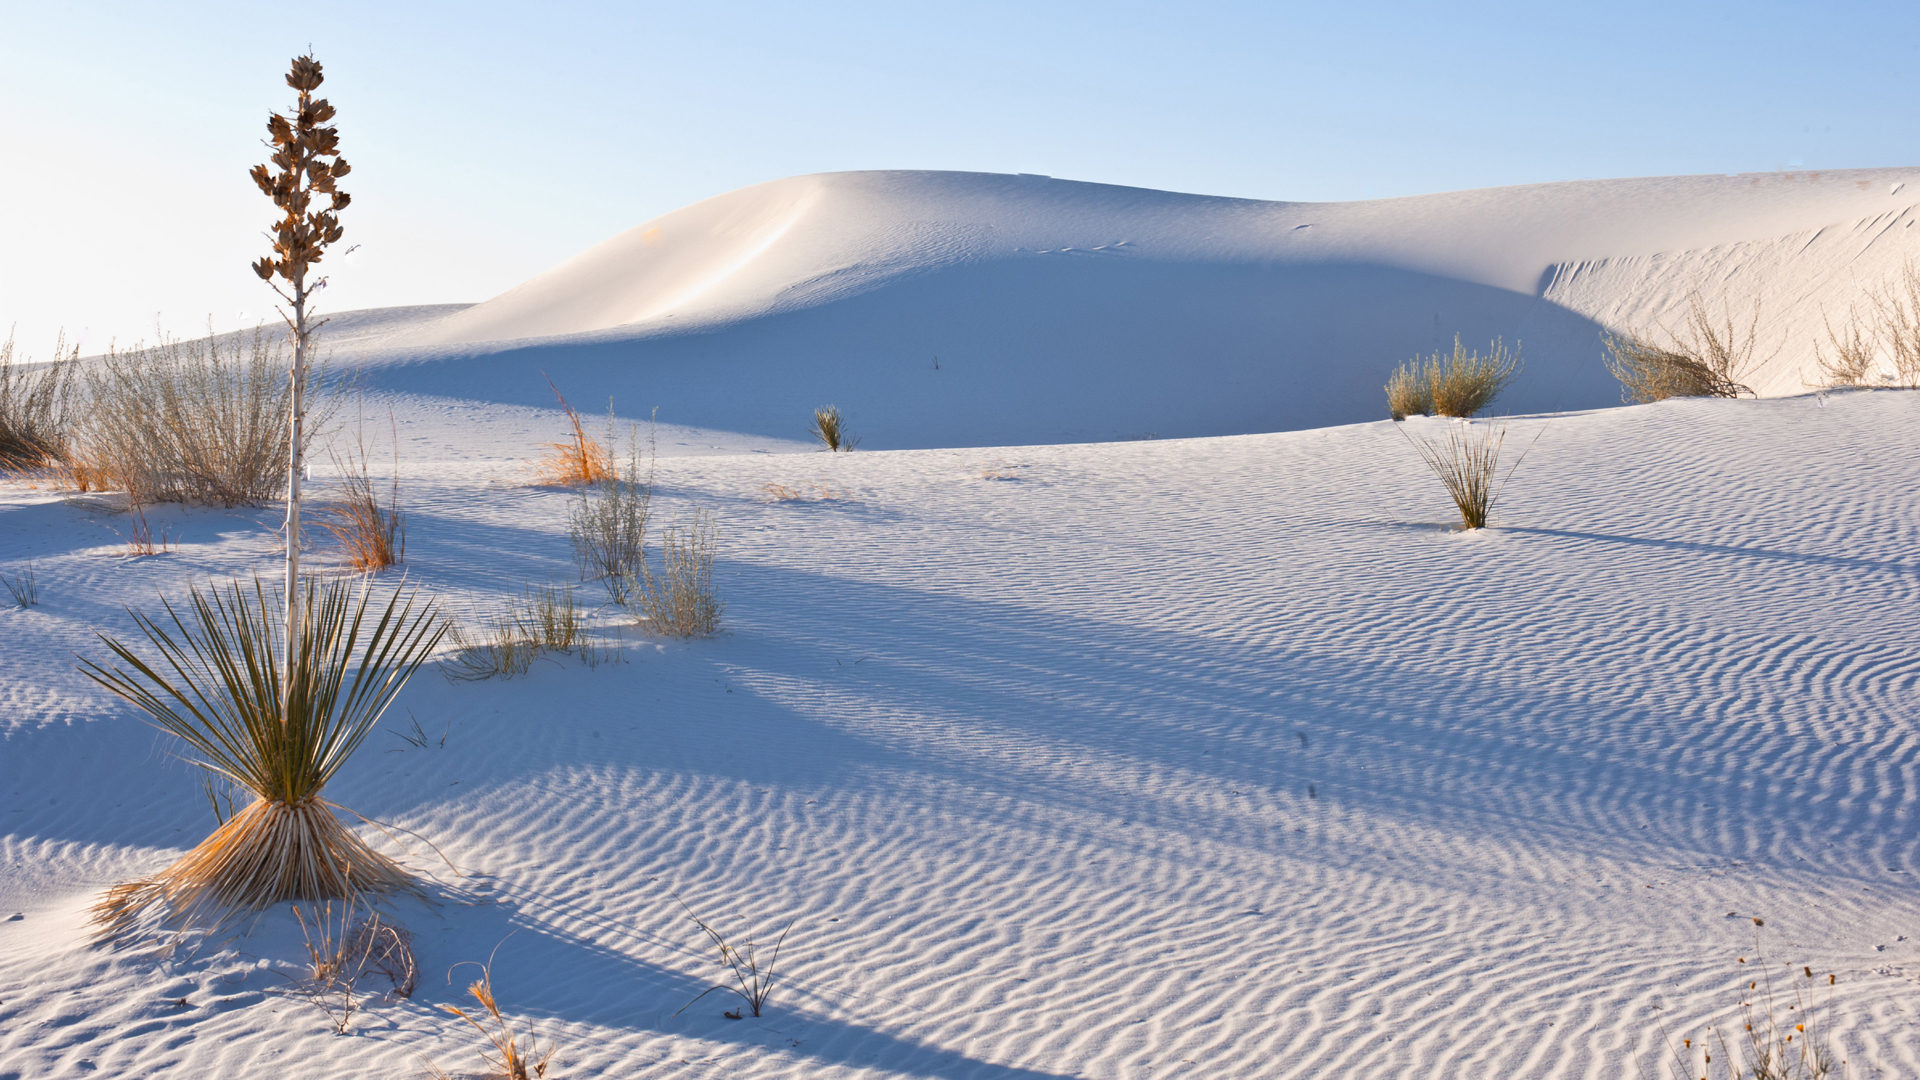 New Mexico, Las cruces, Heart of the Sands, Transverse Dunes and Yucca Plants, White Sands National Monument. (Credit: Universal Images Group via Getty Images)